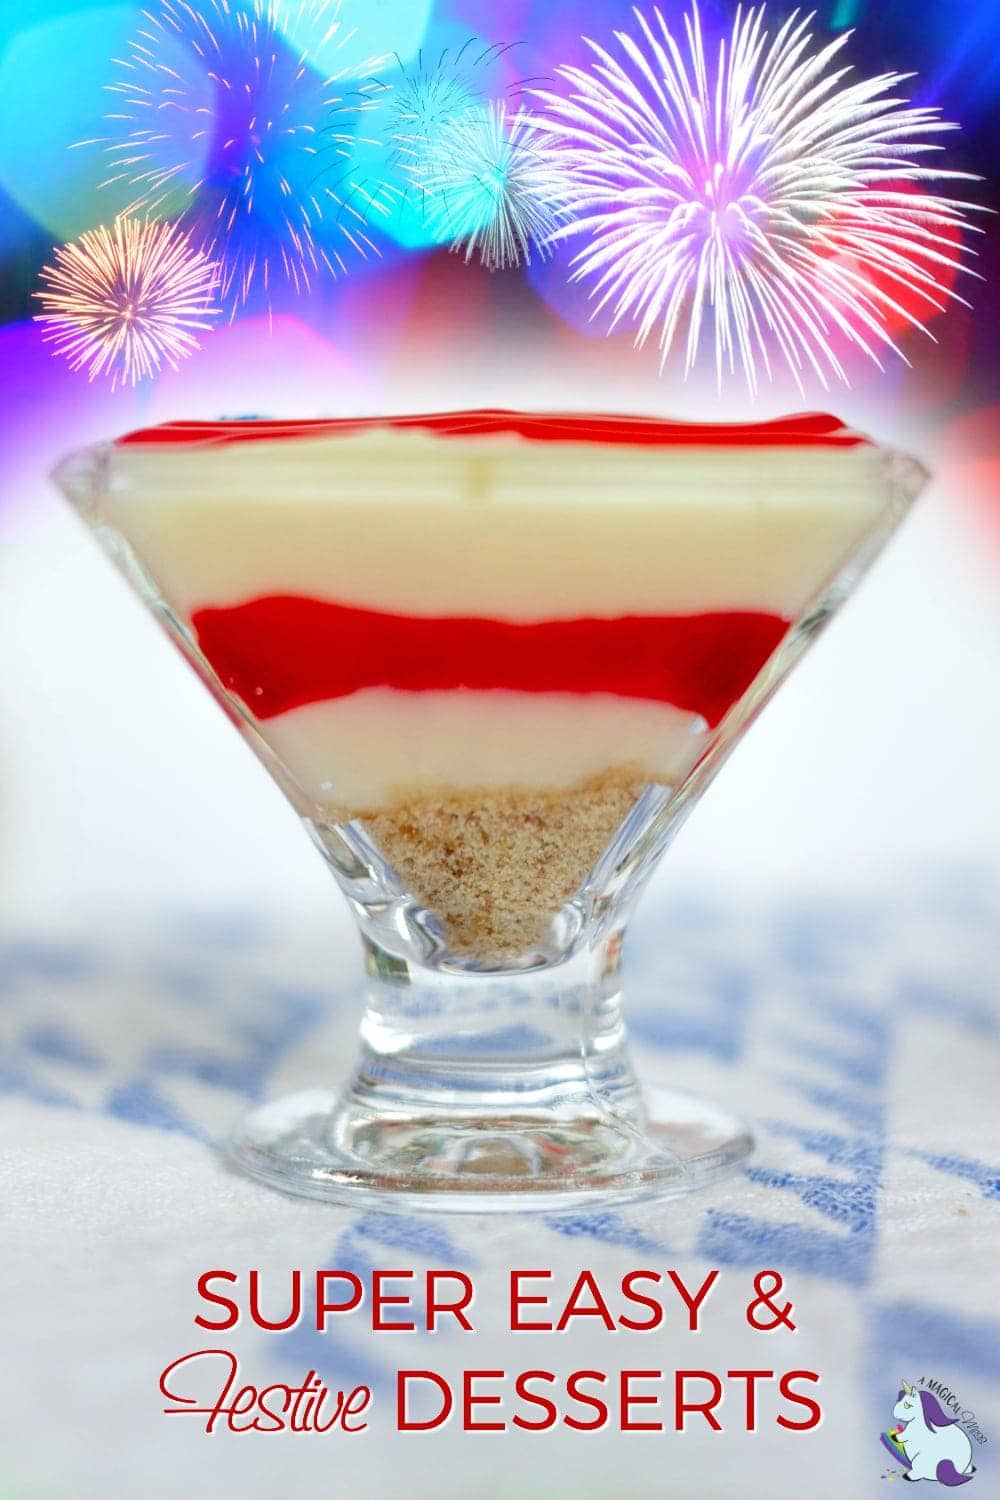 Awesome for a quick and easy 4th of July dessert table! Look at these Festive Pudding Parfaits #NILLASummerParty #pudding #parfaits #4thofjuly #dessert #nobake